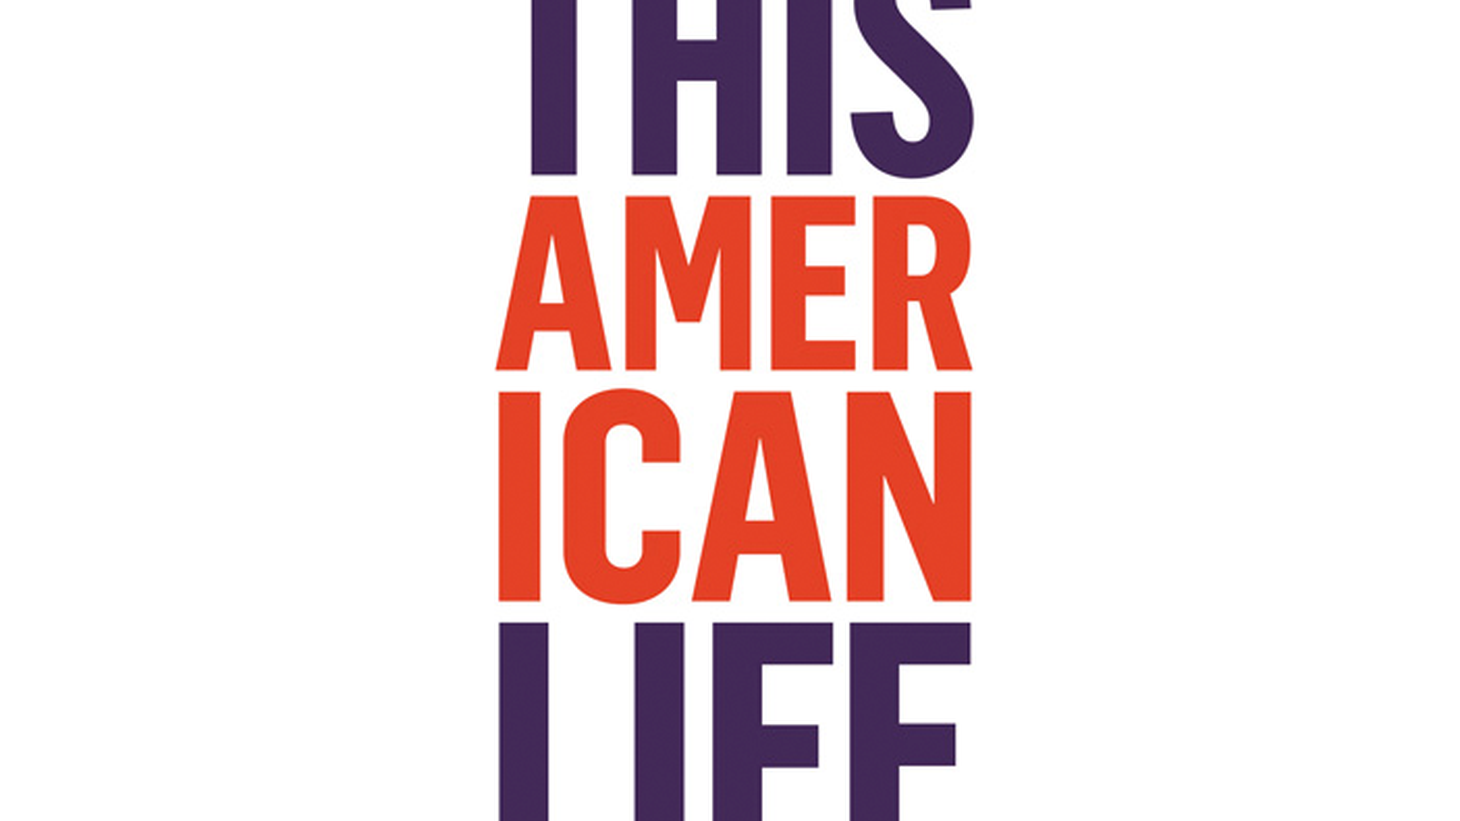 This week's special edition of This American Life features segments from the following previously aired programs:  Testosterone   Suckers   Reruns